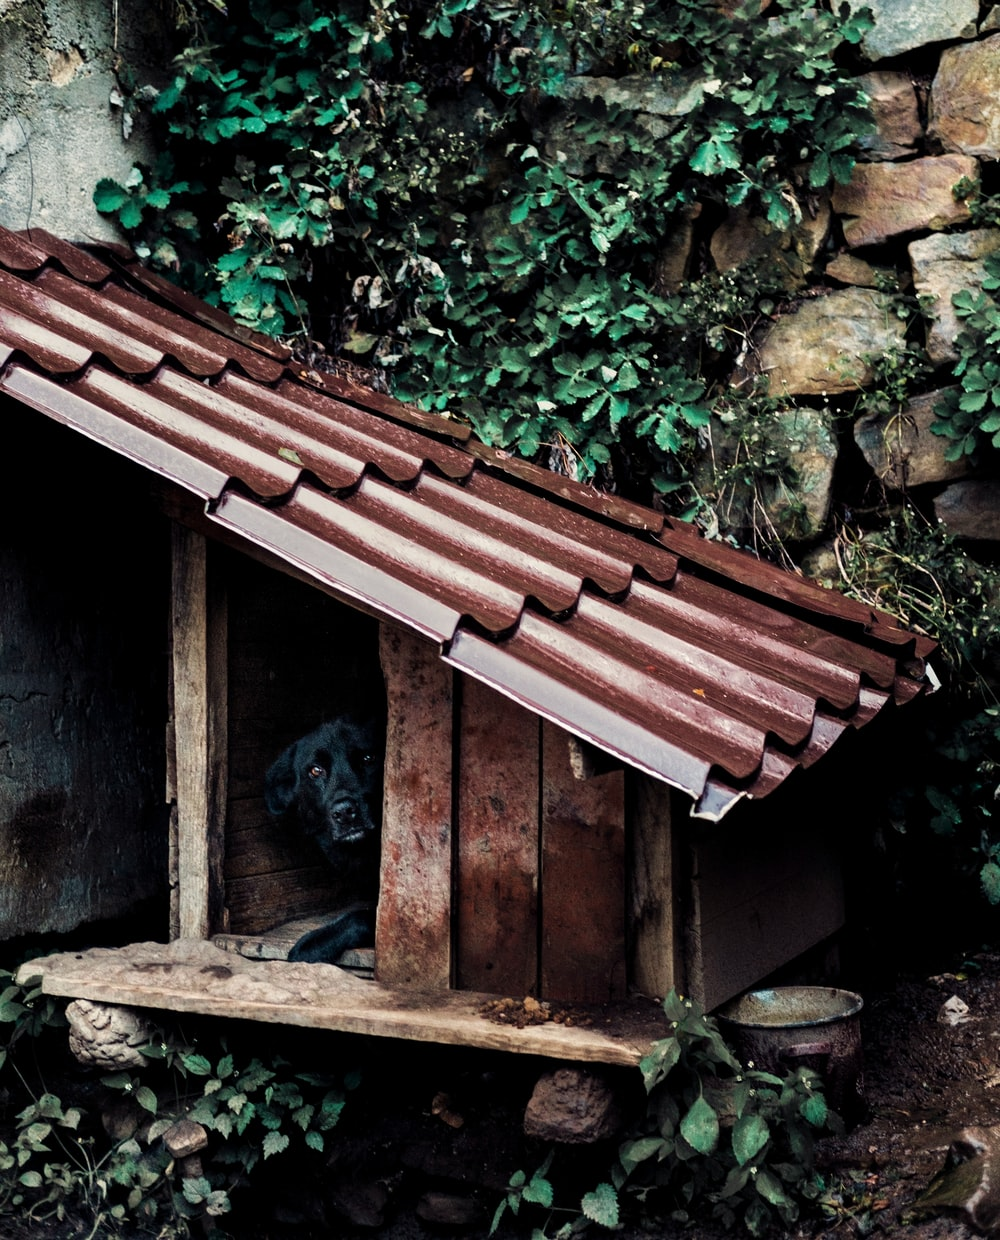 black cat on brown wooden roof